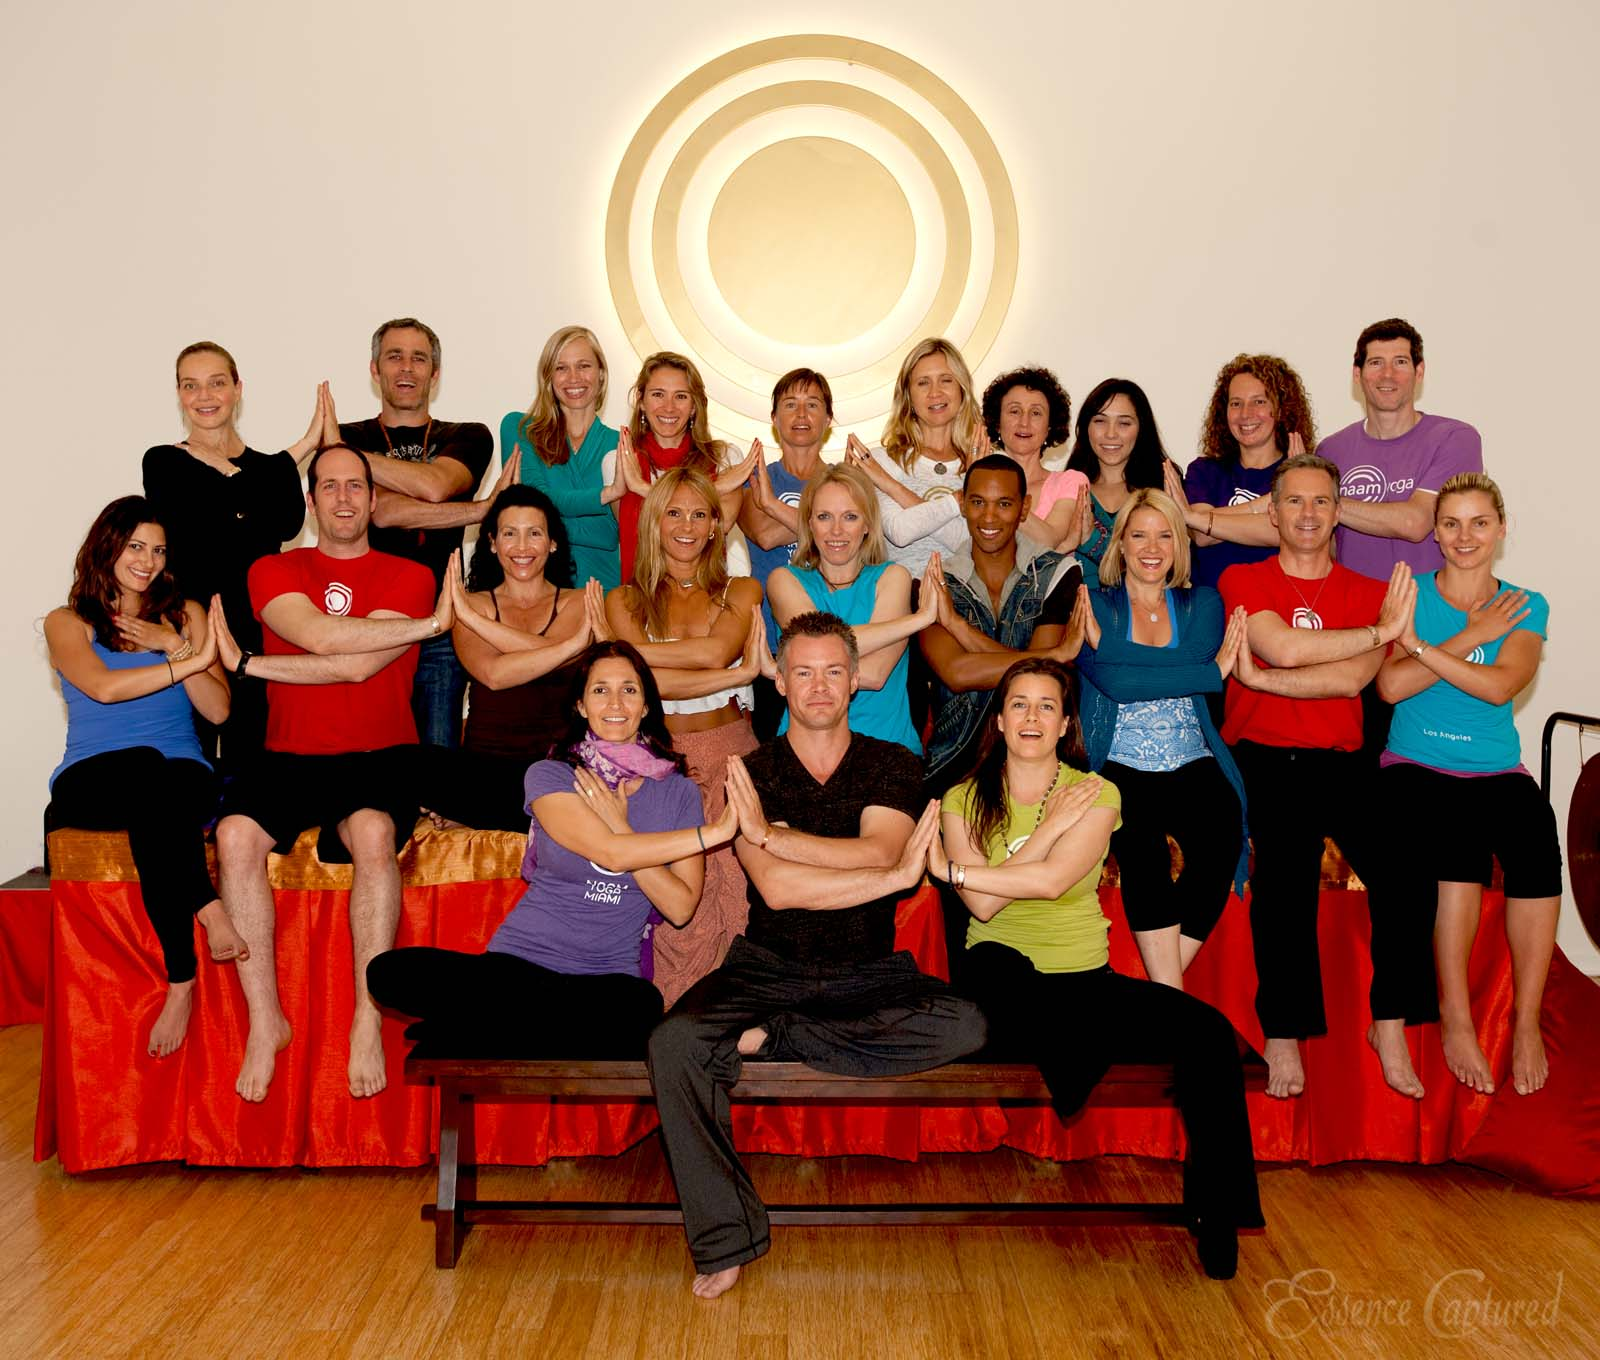 Naam Yoga Teachers group photo arms across chest hands touch each other